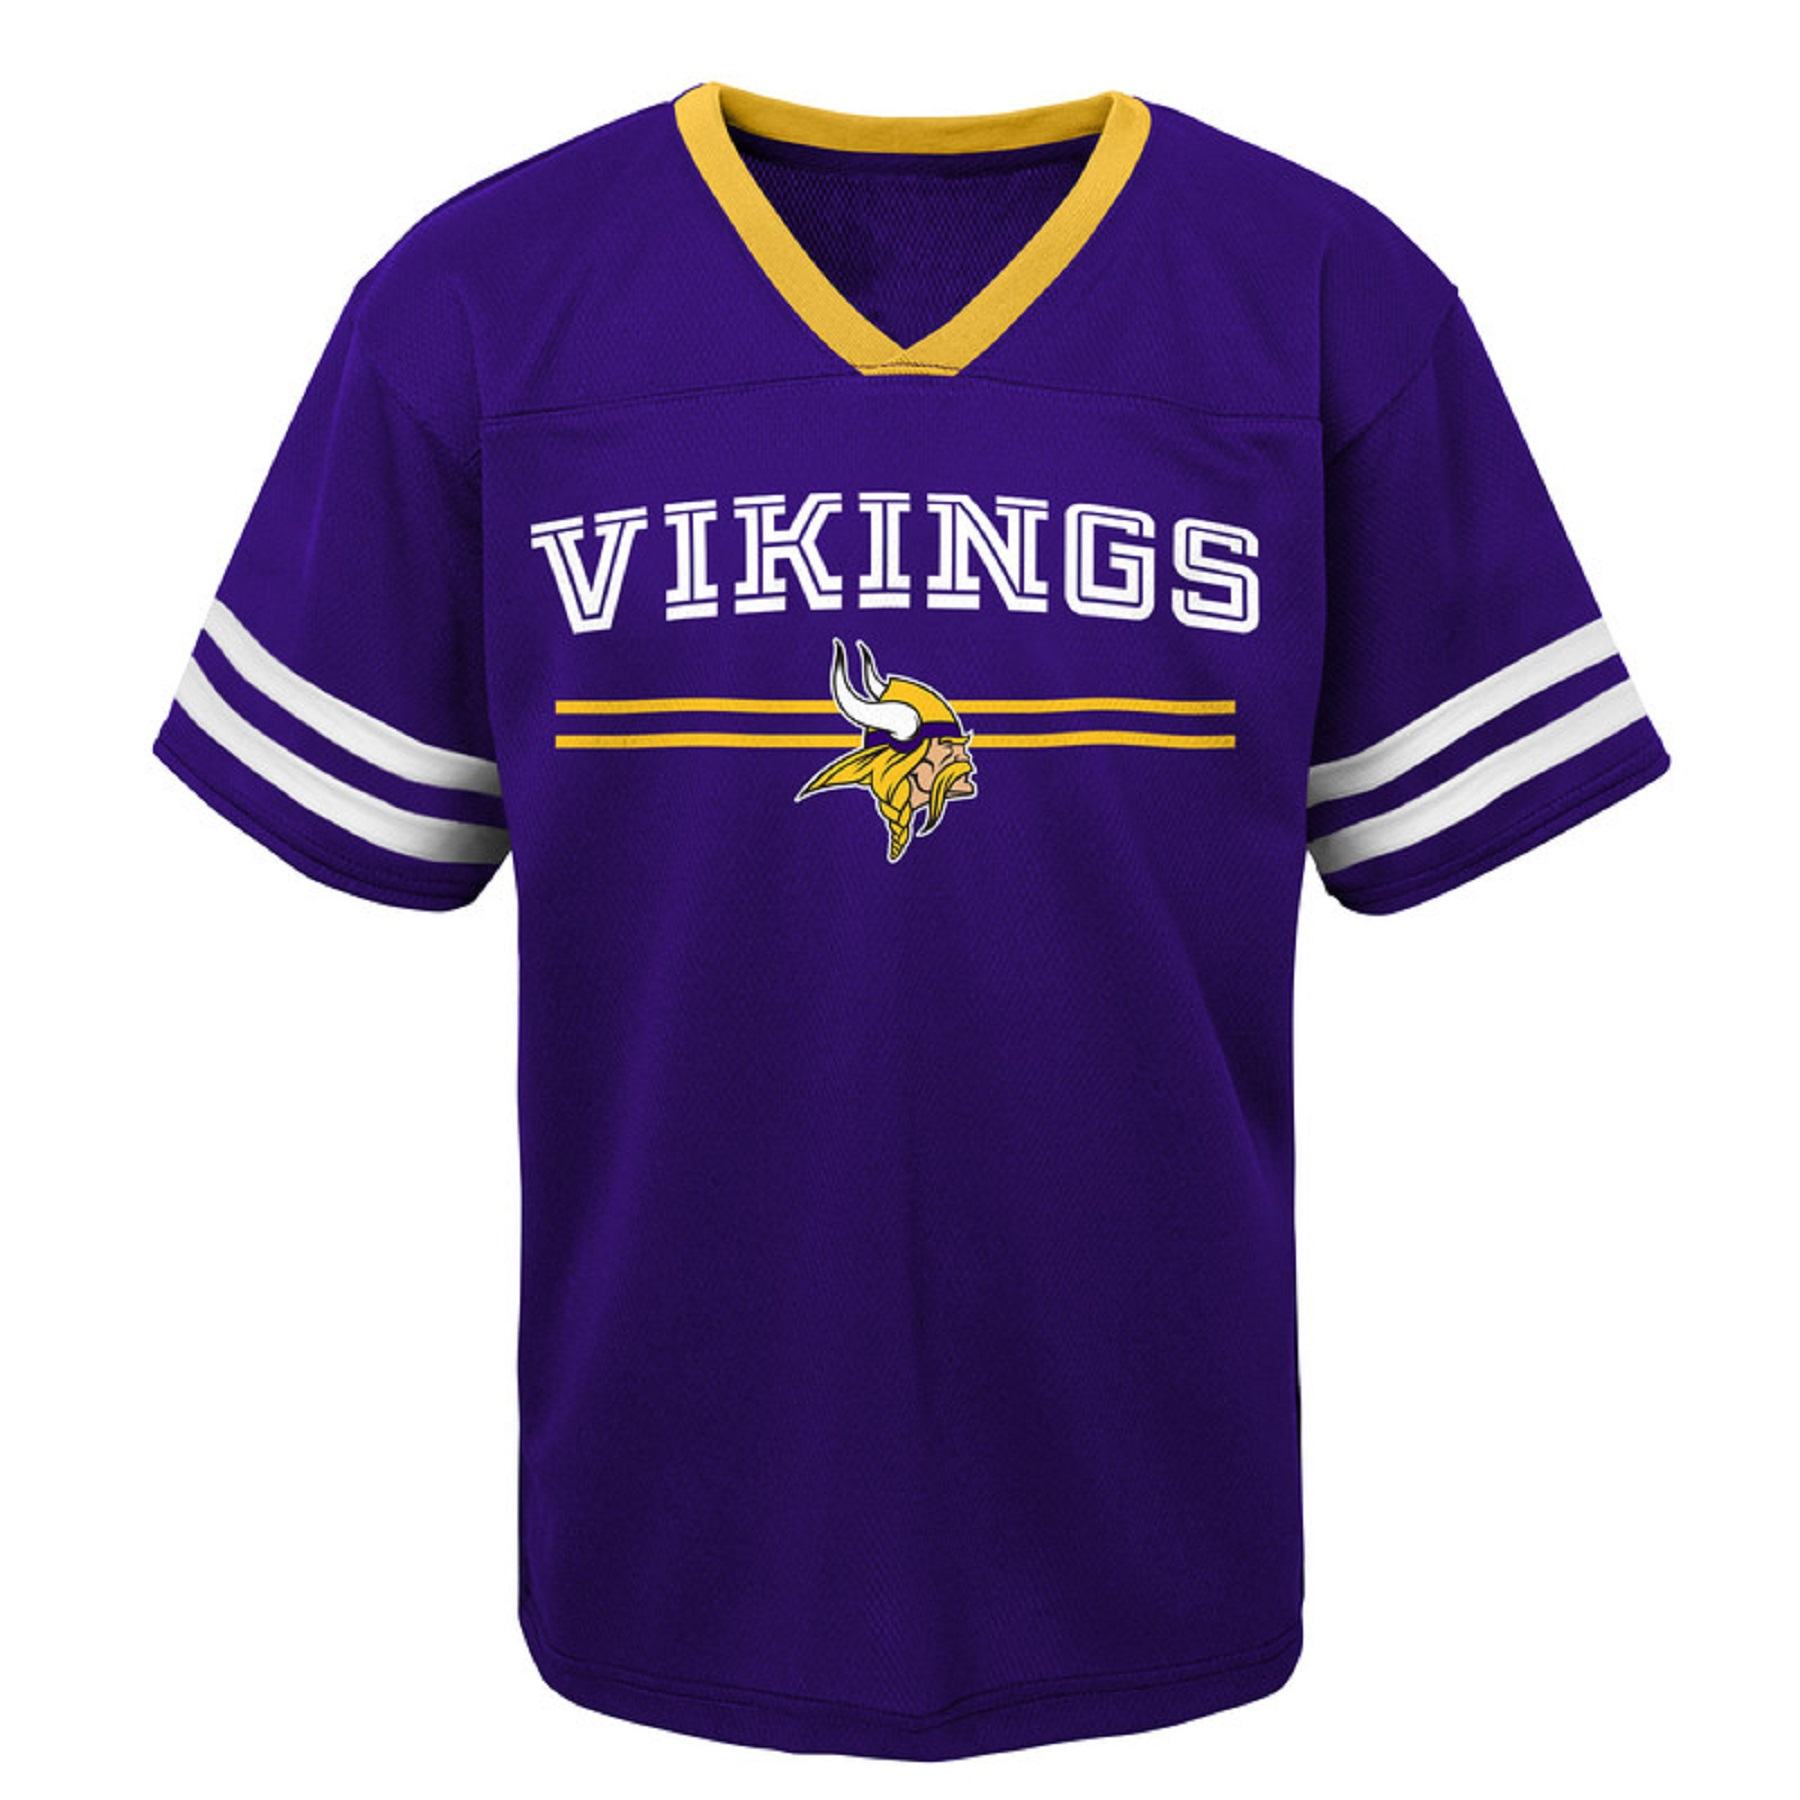 Youth Purple Minnesota Vikings Mesh V-Neck T-Shirt